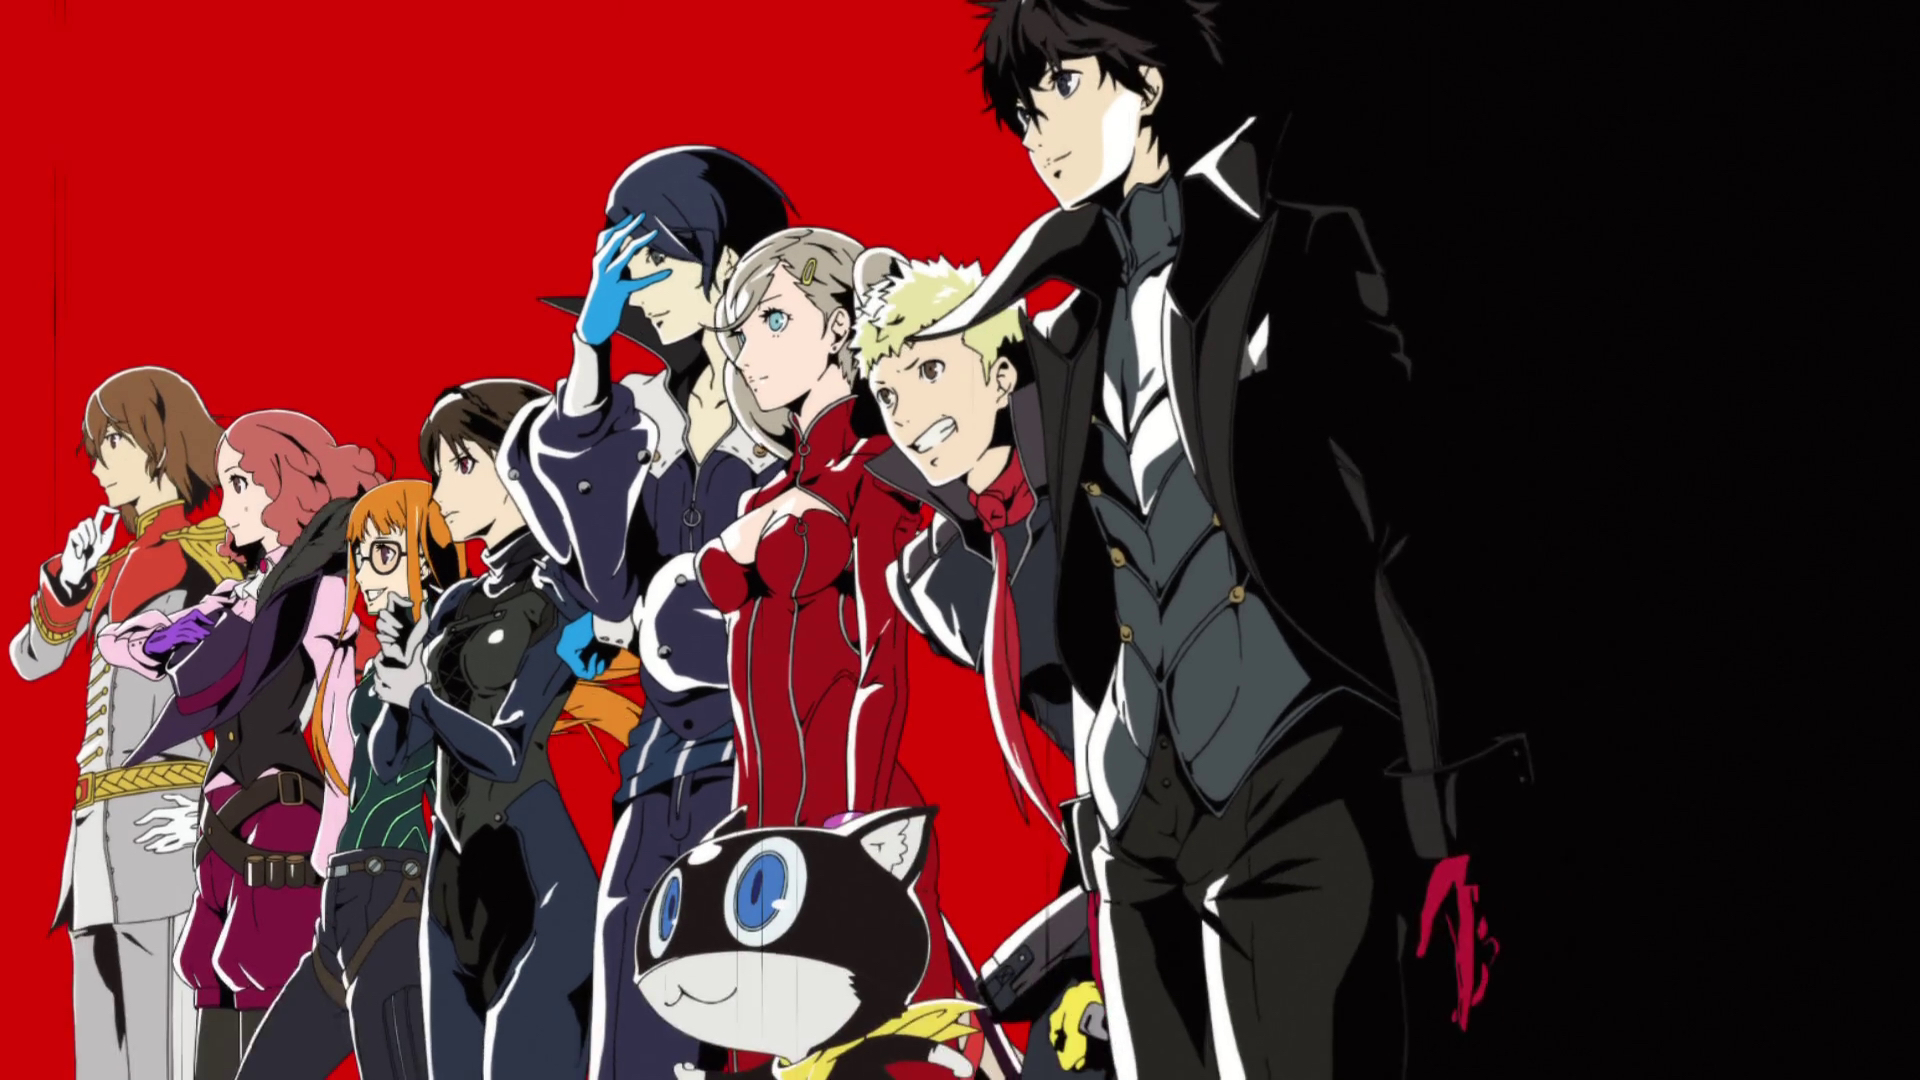 Atlus: Persona 5 Royal not planned for any platform but PS4